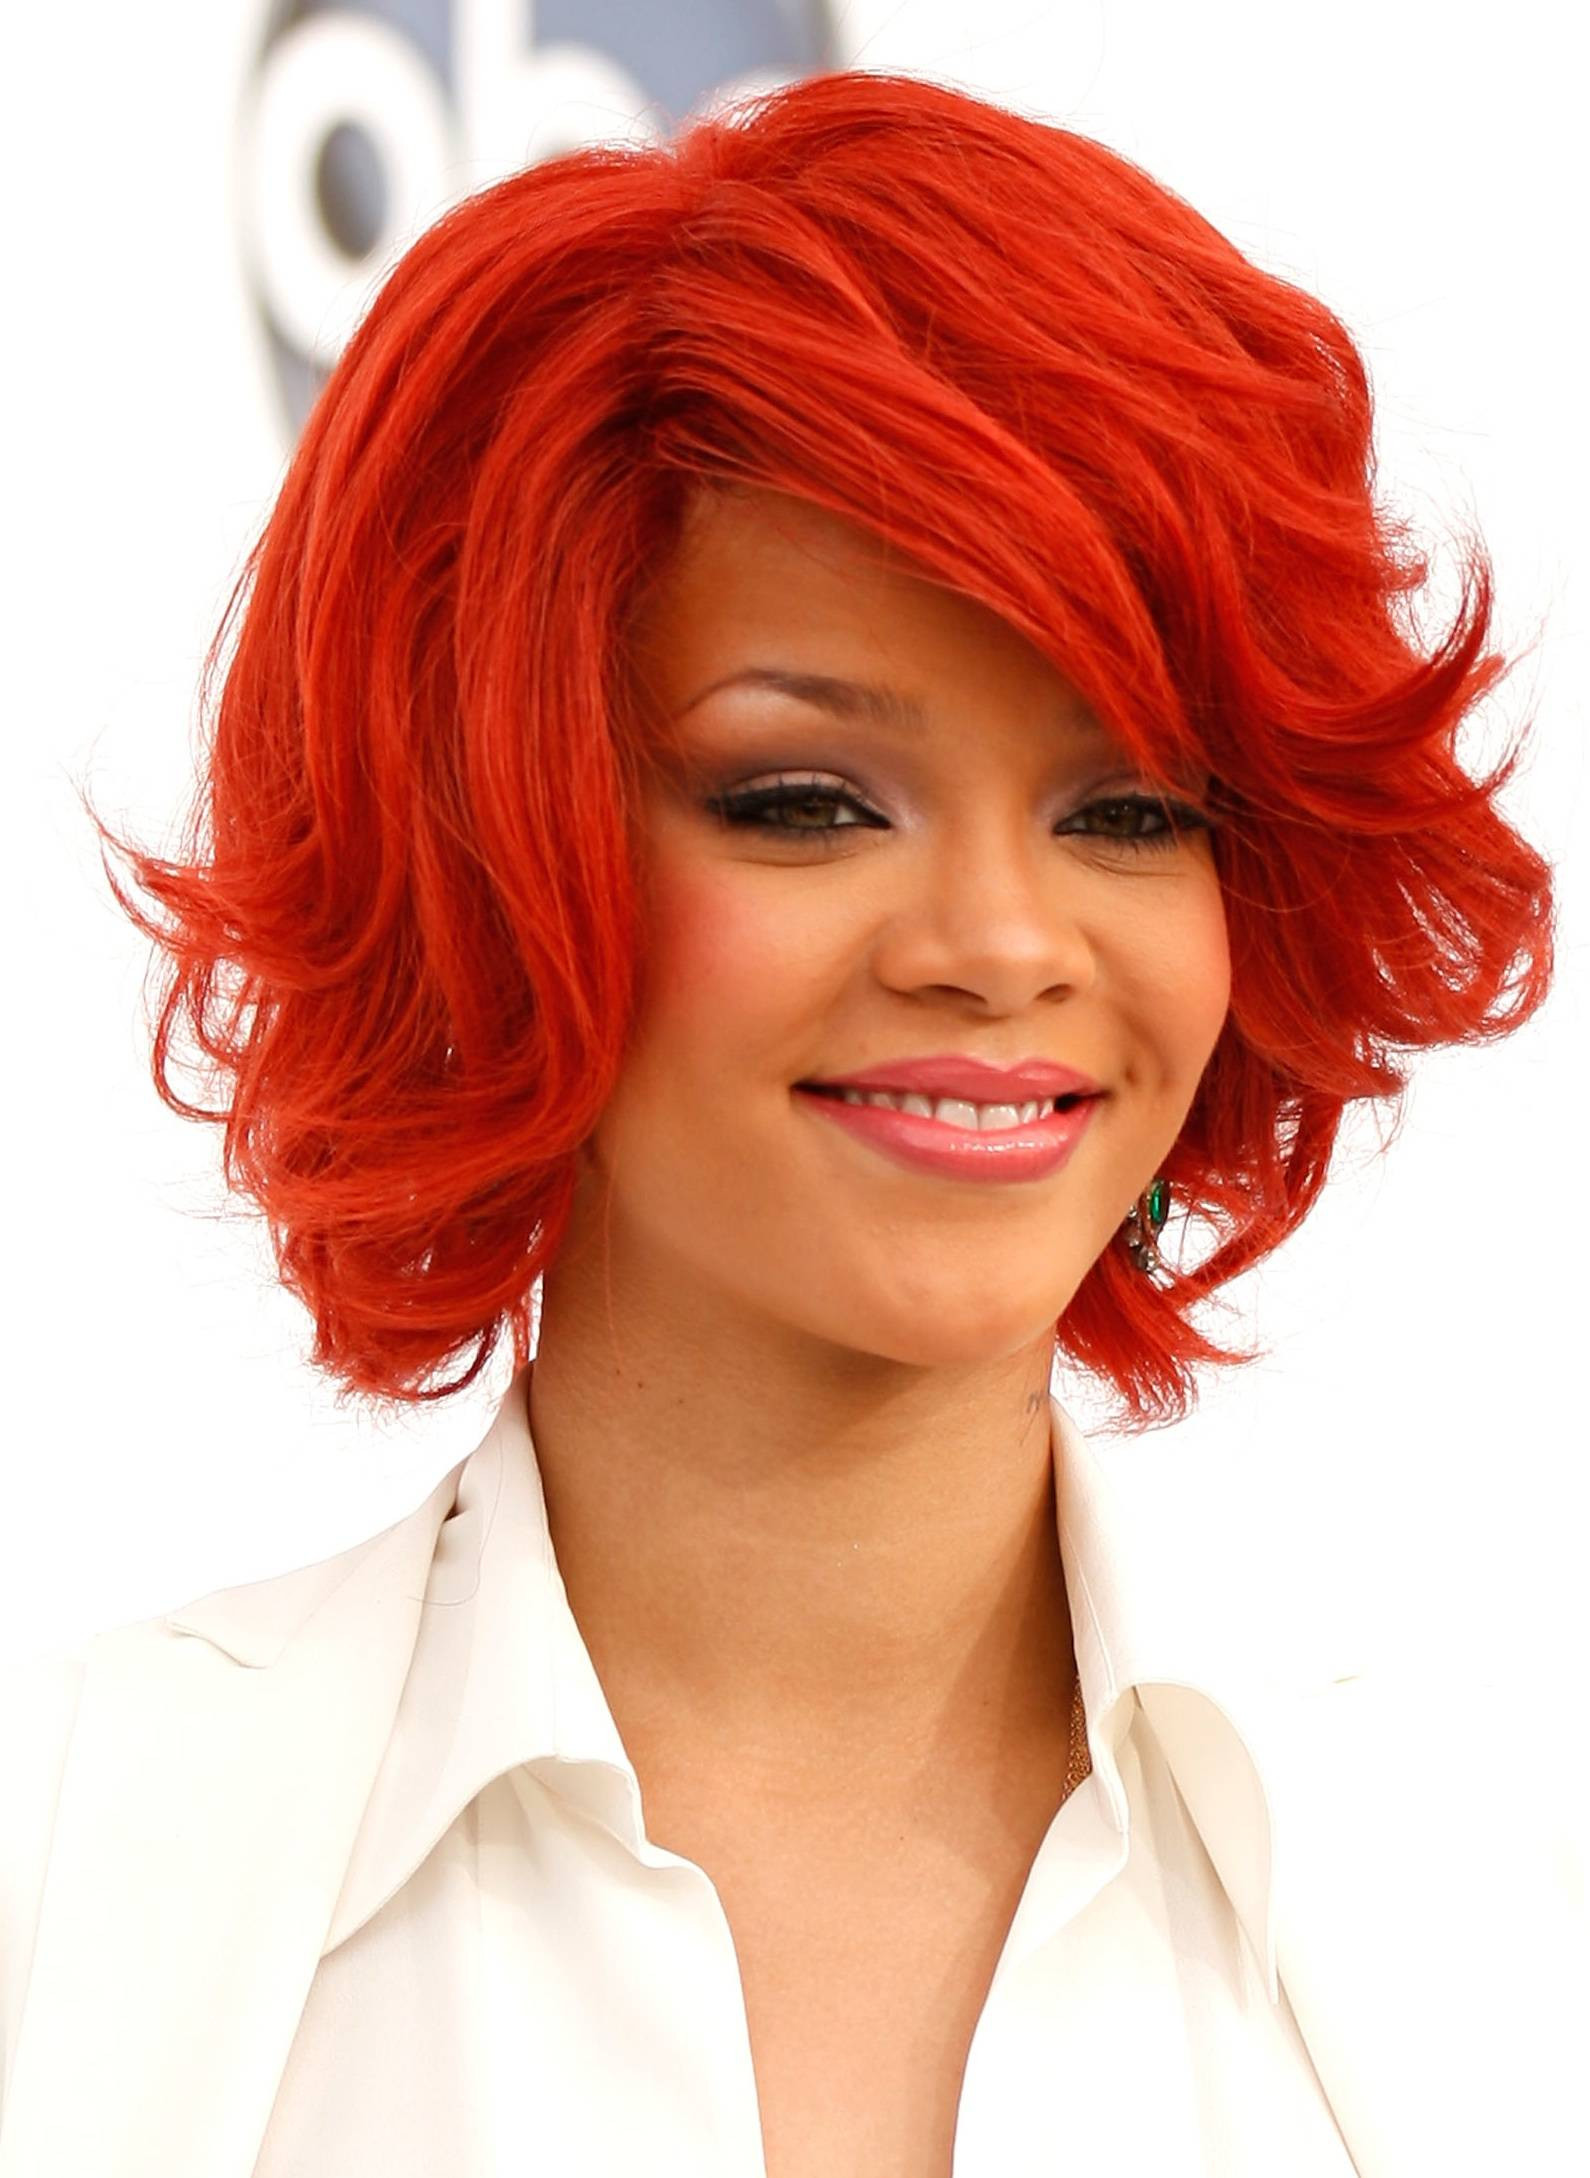 Best ideas about Colored Hairstyles . Save or Pin 20 Amazing Bright Colors for Hair Now.